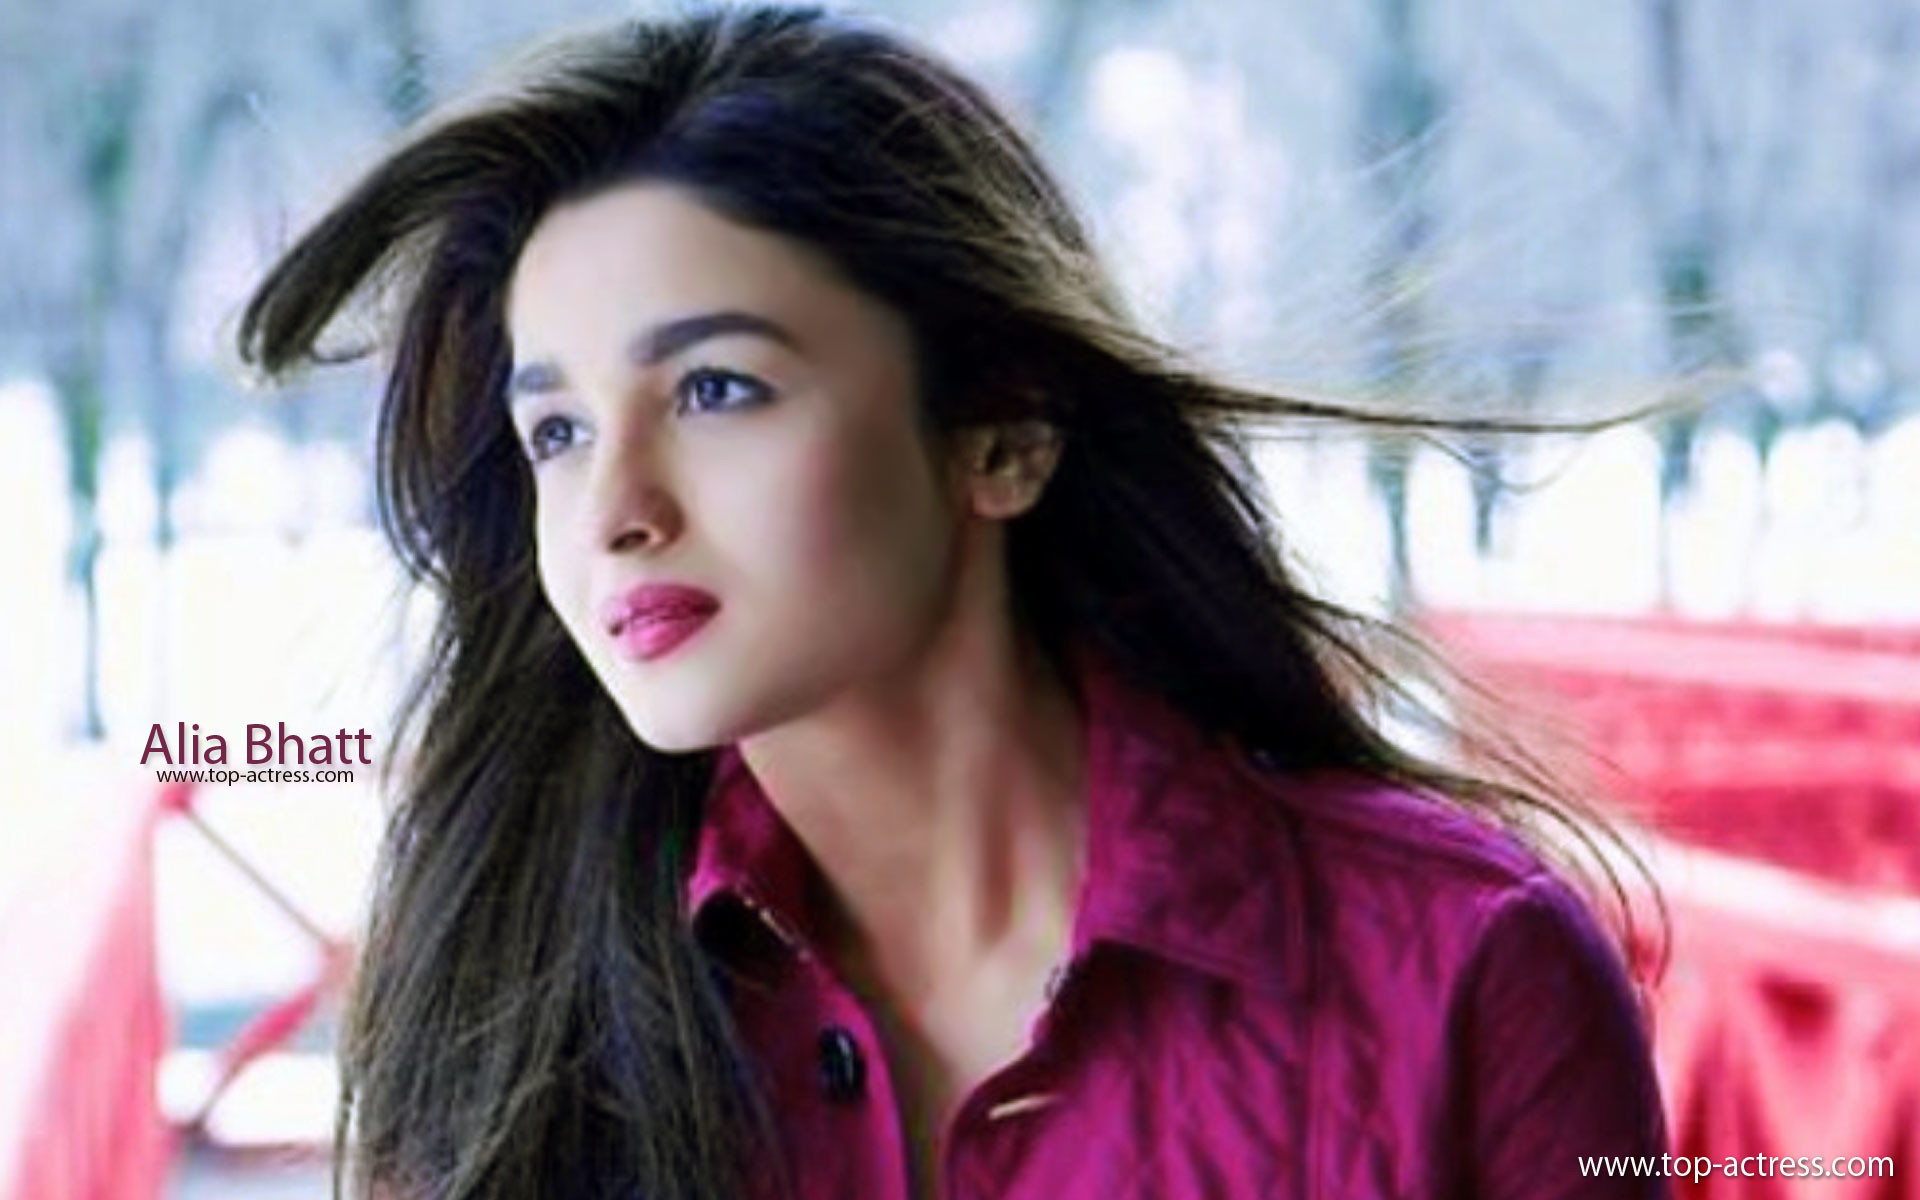 1920x1200 Related Wallpapers from Amy Lee. Alia Bhatt Latest Hd Wallpapers